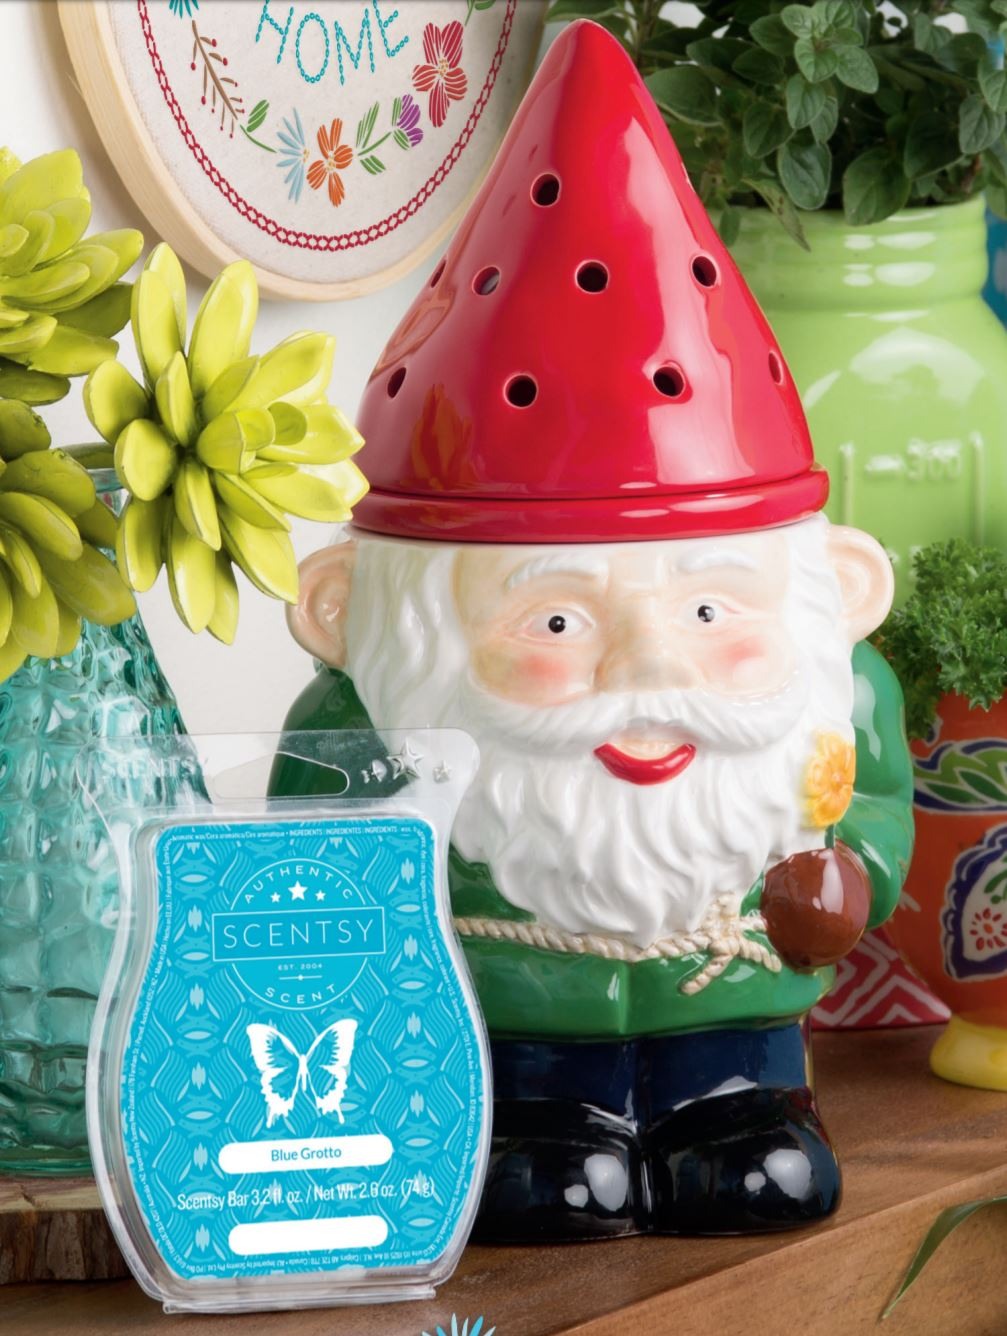 Garden Gnome From Scentsy Buy Scentsy The Safest Candles